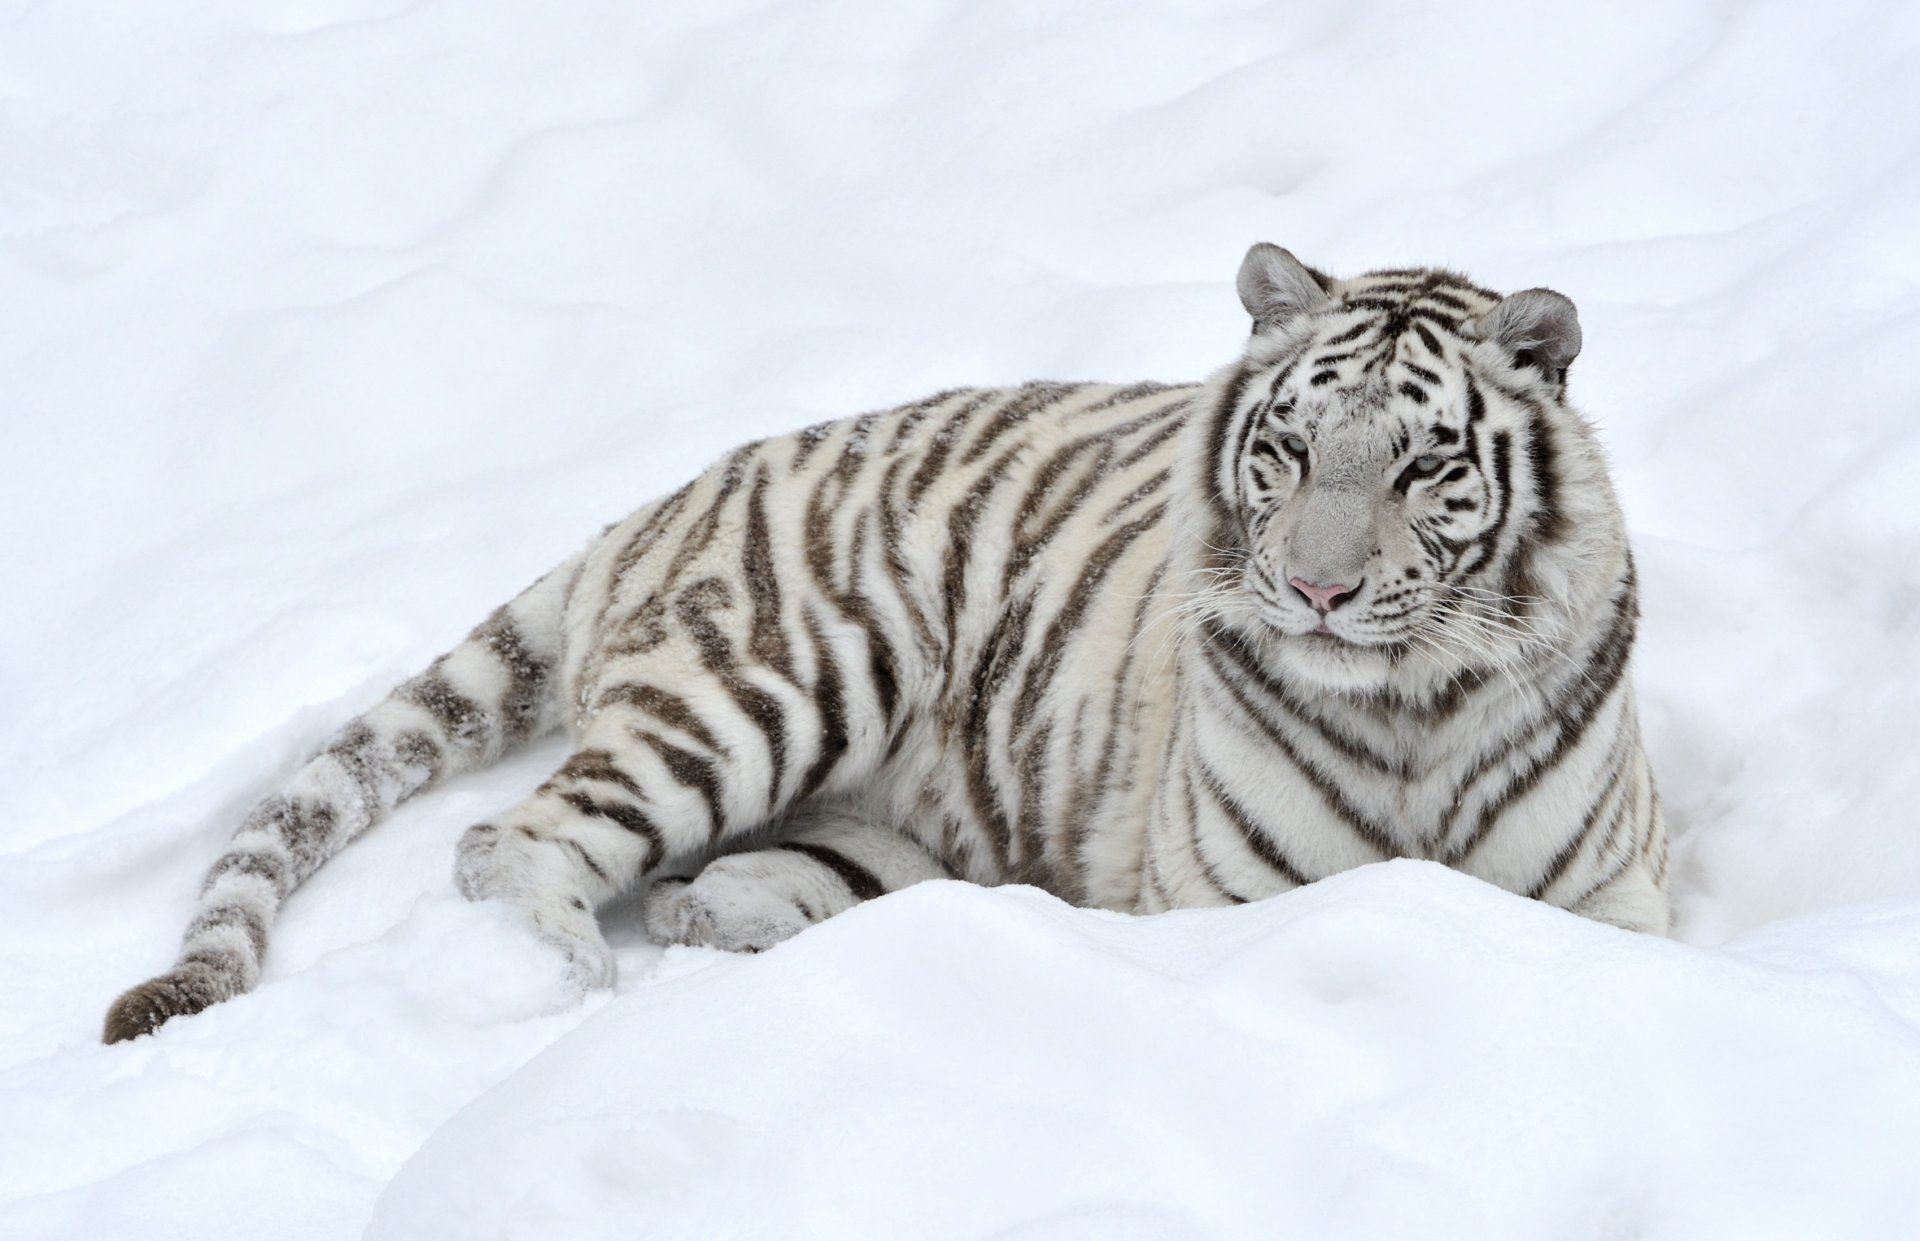 White Tiger lies on the snow, Wallpaper